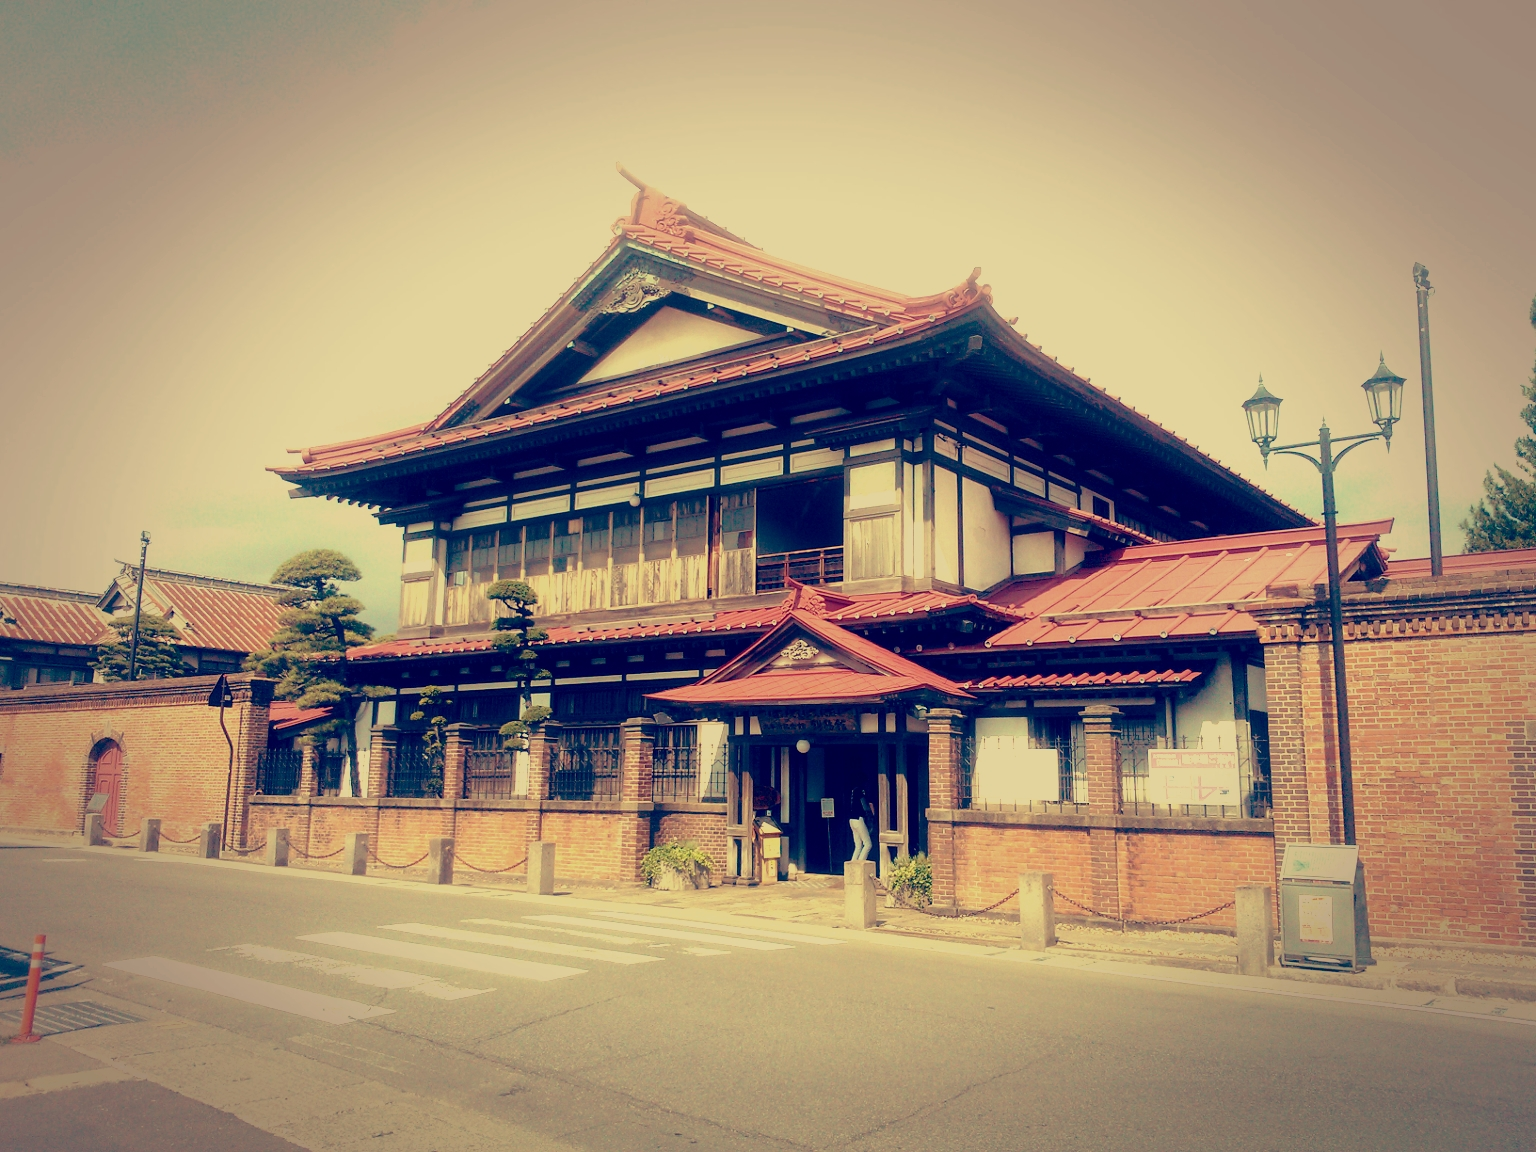 Discover Japan and the Japanese culture and traditions